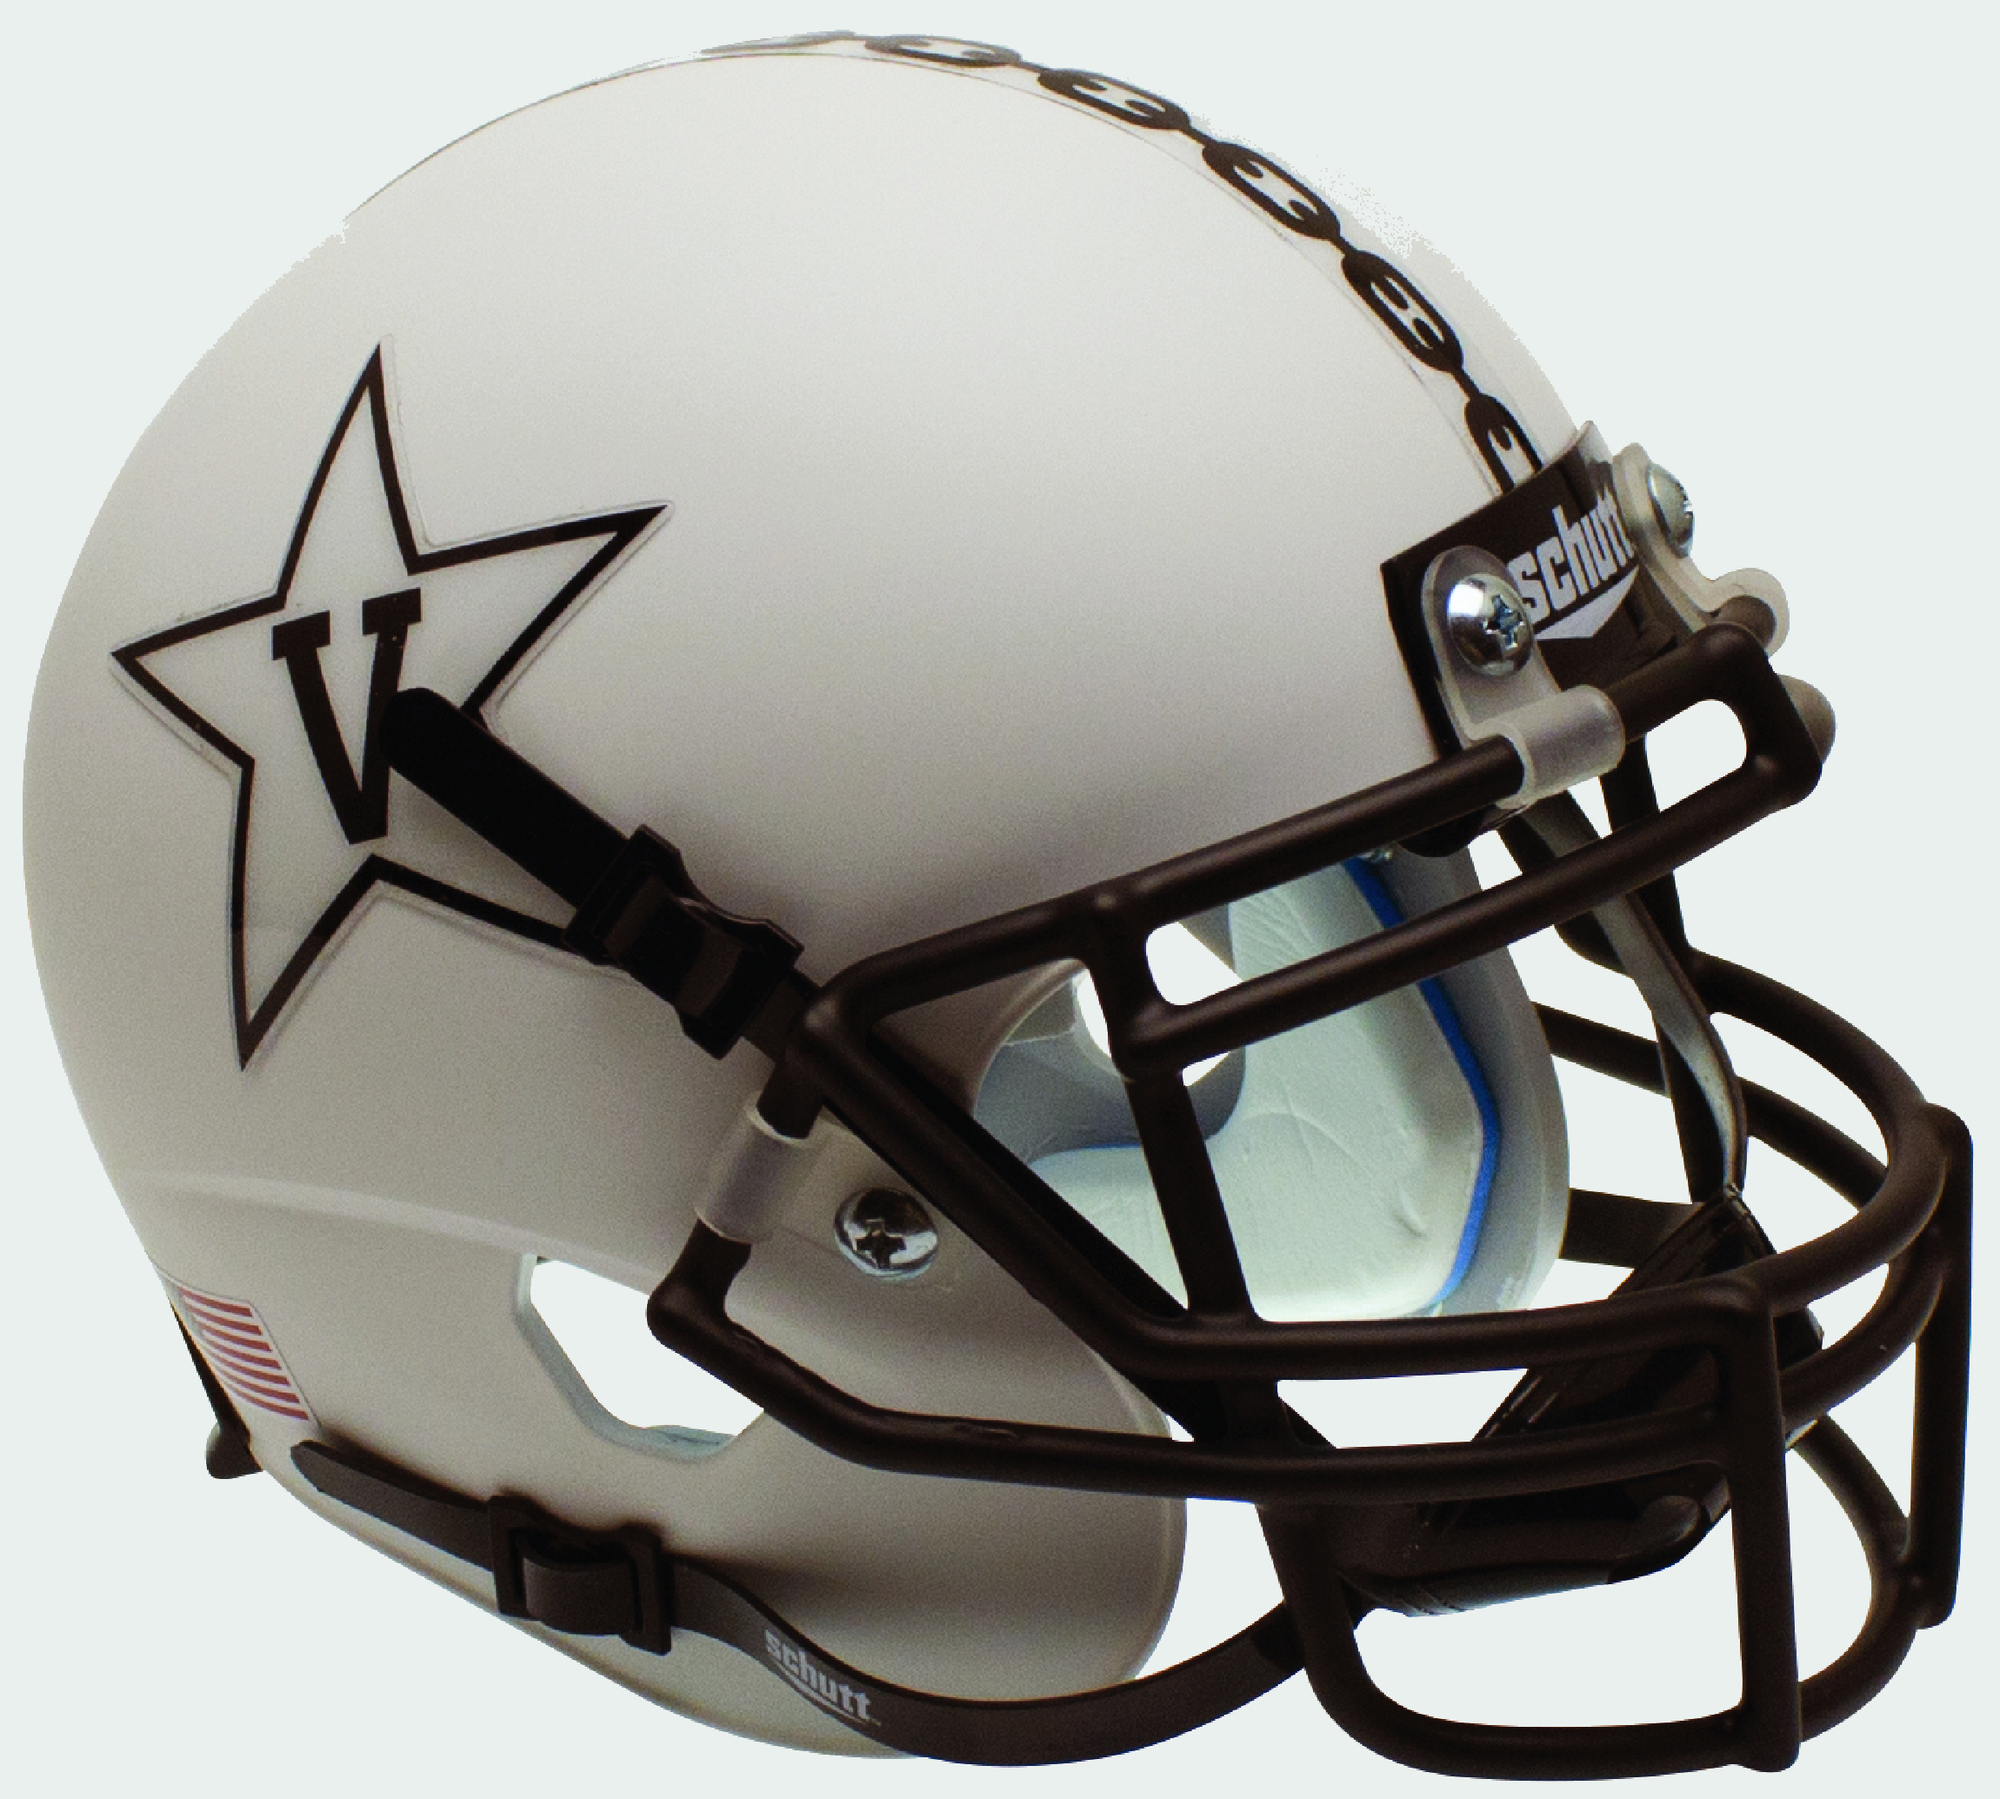 Vanderbilt Commodores Mini XP Authentic Helmet Schutt B Matte White w Matte MaskB PSM-Powers Sports Memorabilia